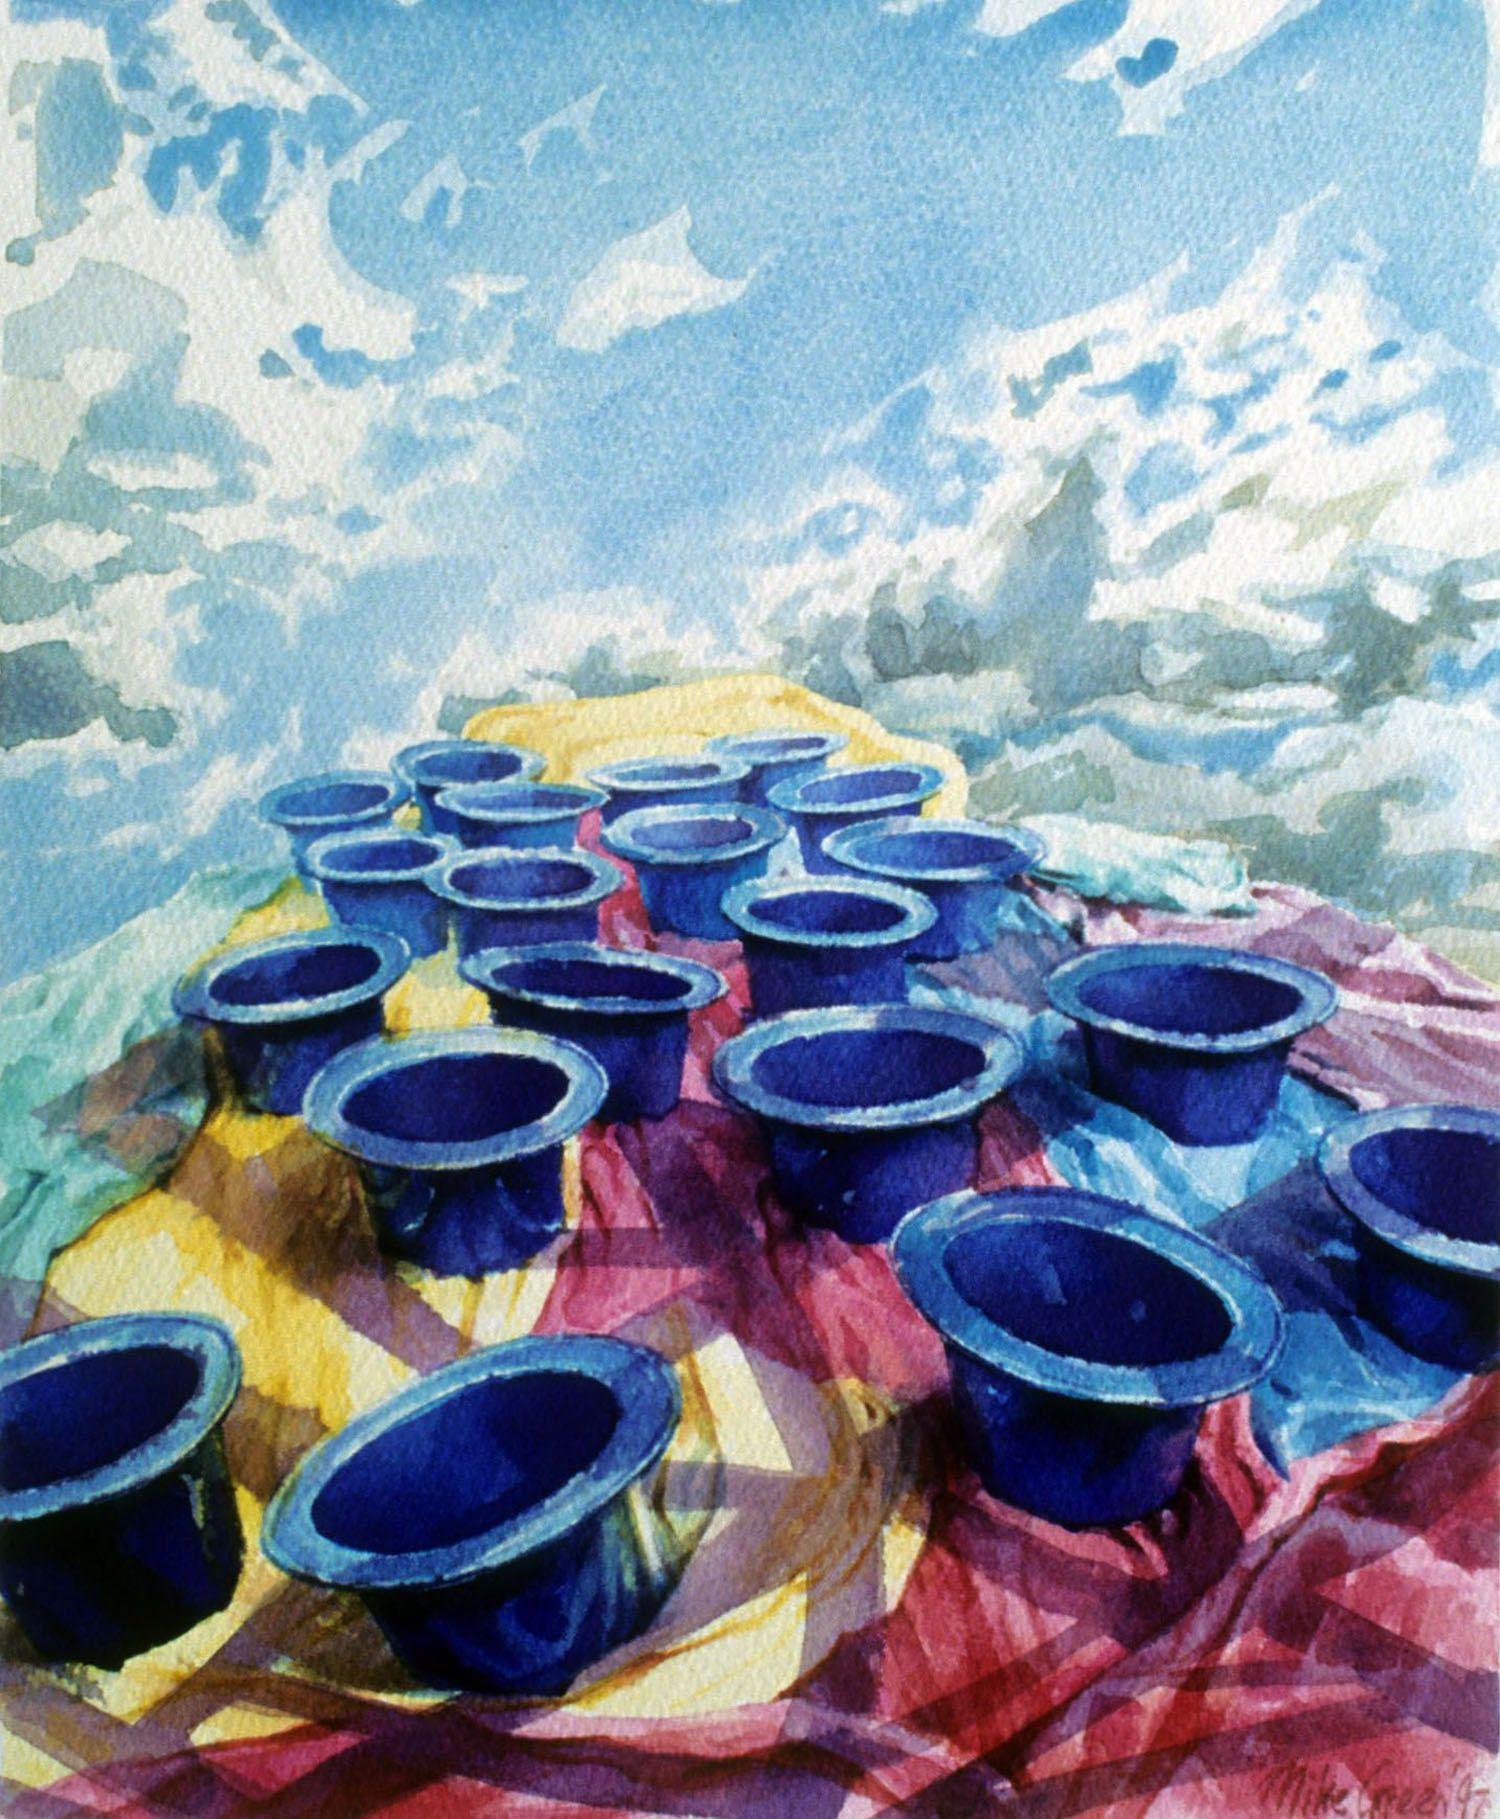 """""""Blue plastic hats from the sky"""" 1997. Watercolour on 300gms. Arches paper. 33.5 x 27cm"""